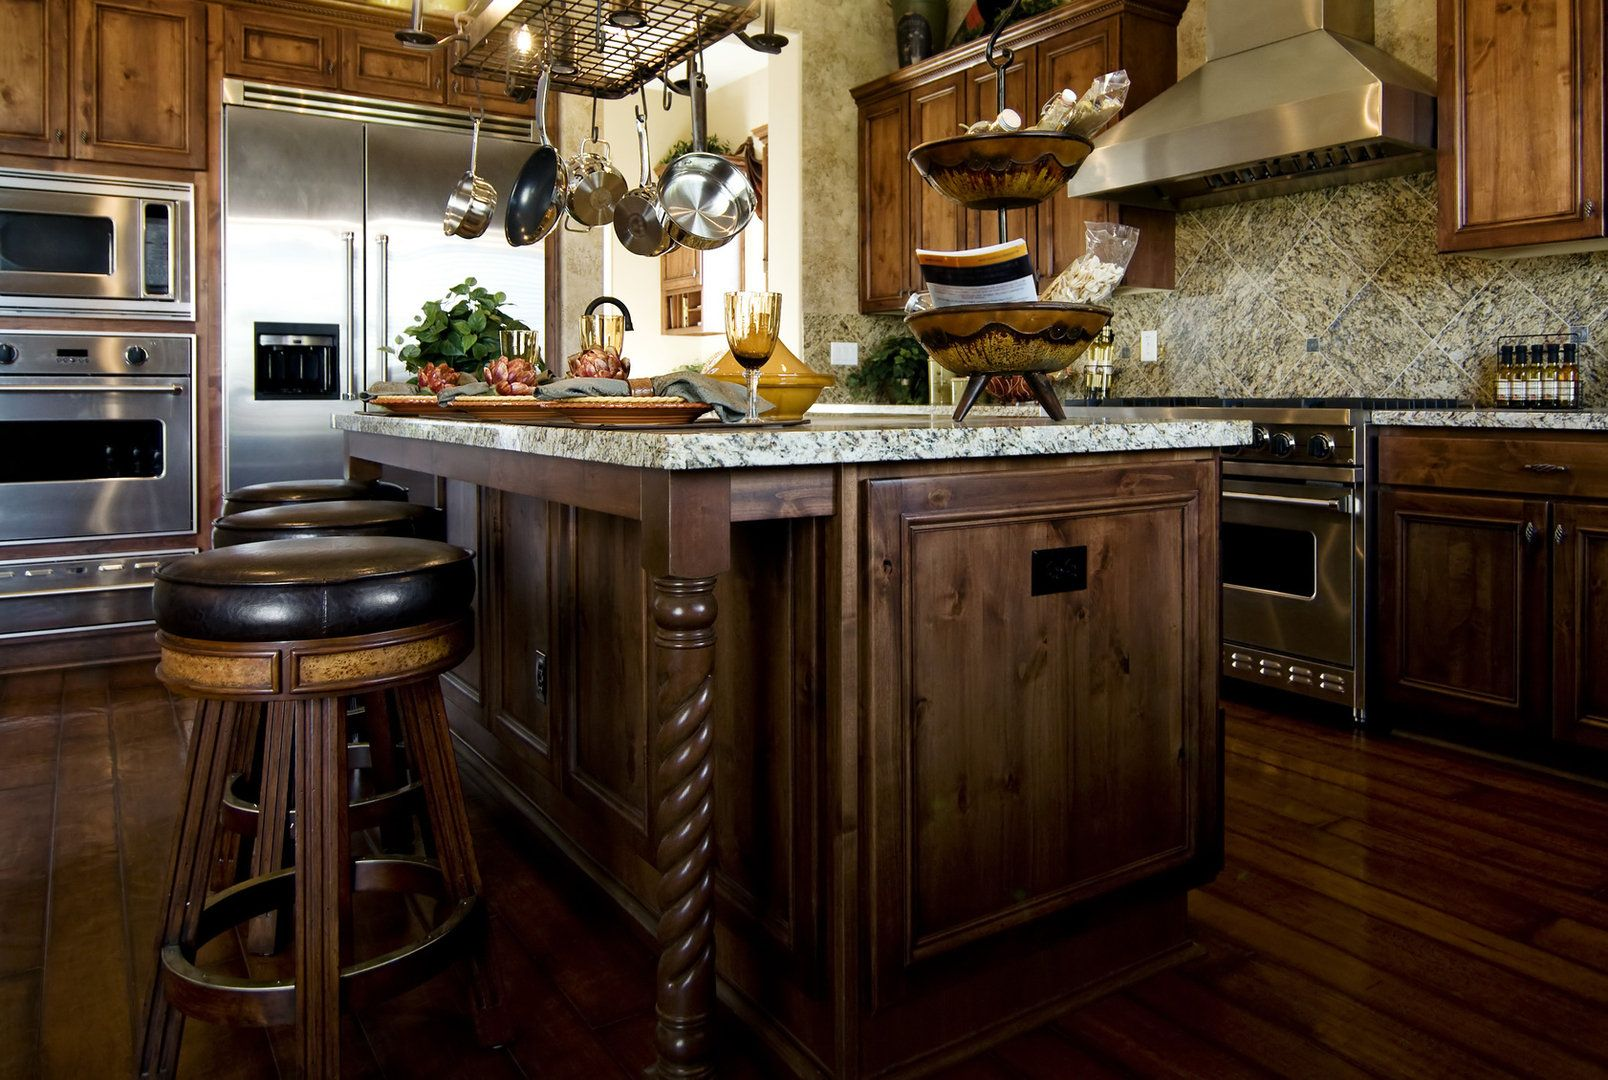 Awesome Kitchen Tips: 2   Wood kitchen cabinets, Rustic ...